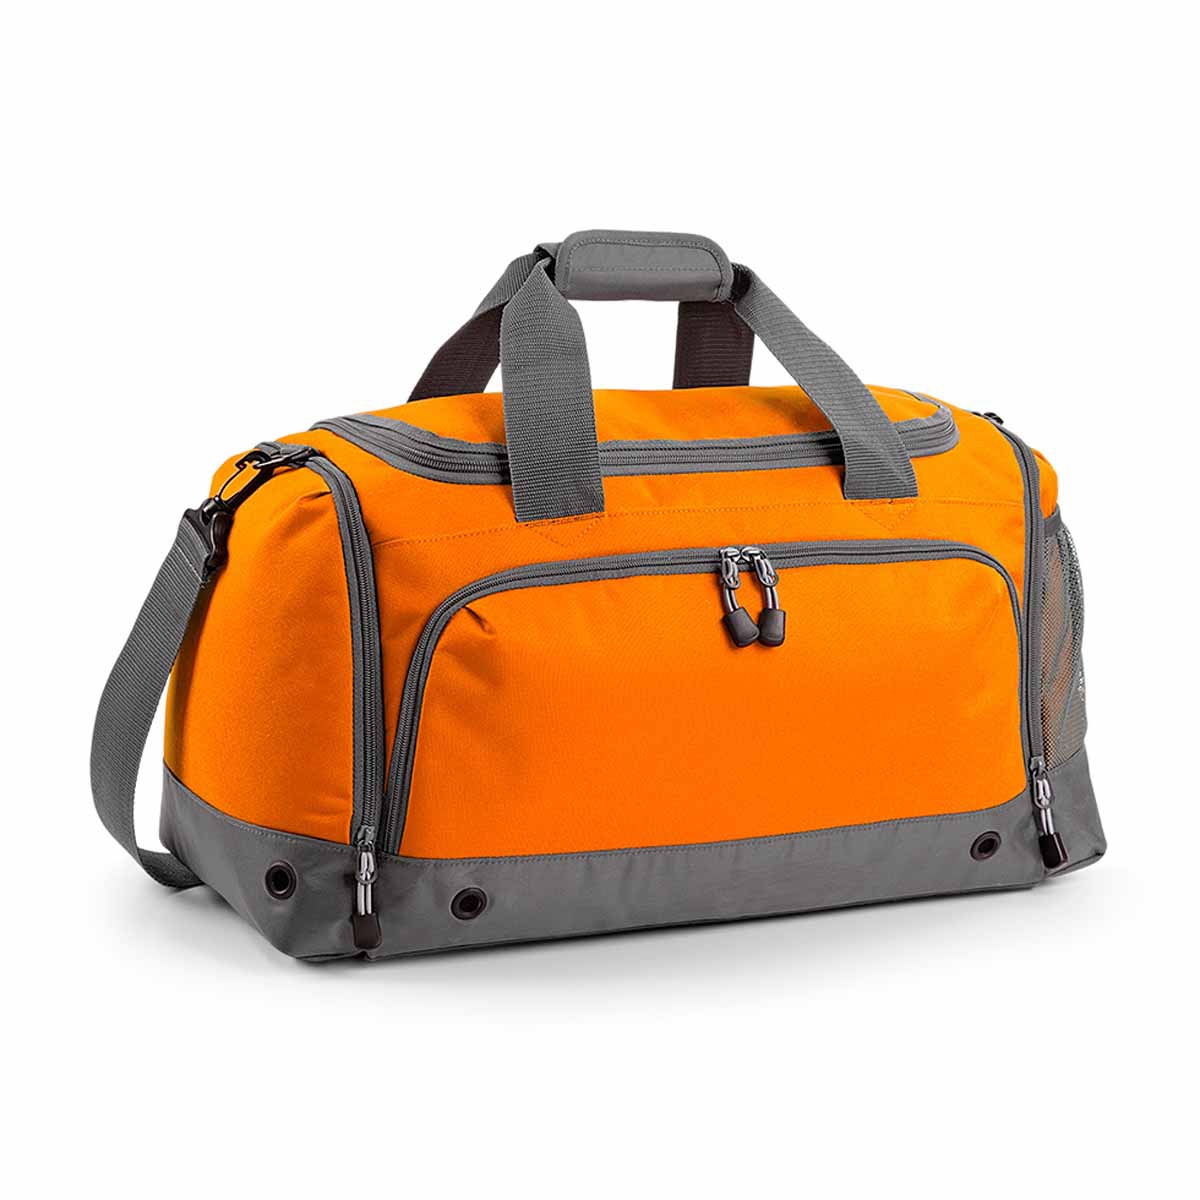 Sac de sport multi-sports - 30 L - BG544 - orange